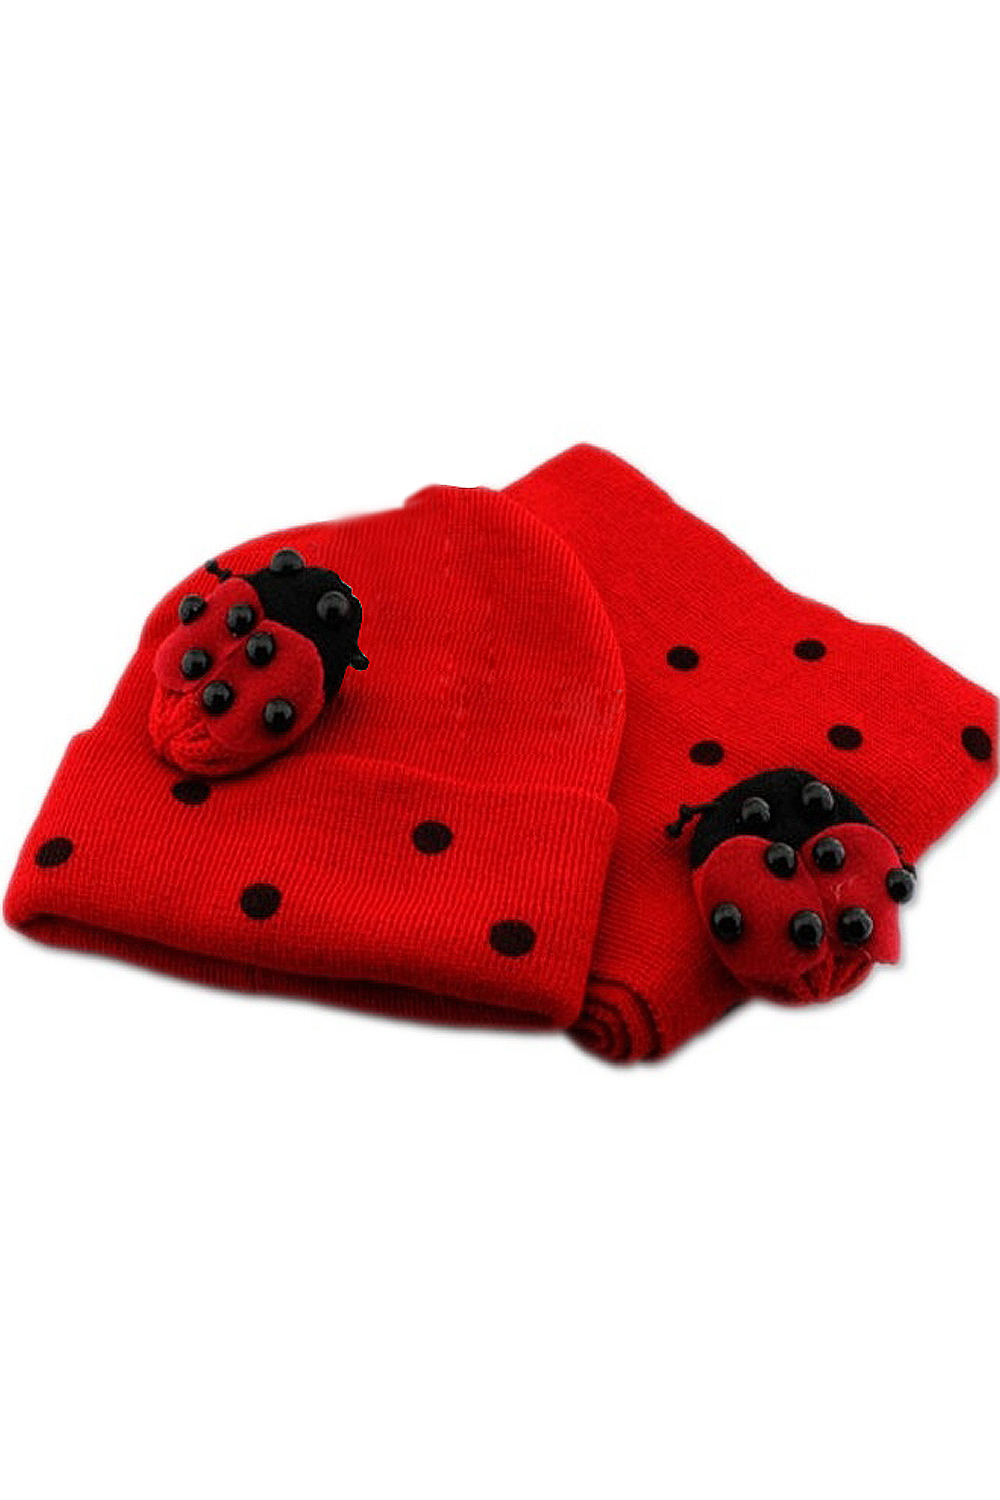 ABWE Best Sale Red Baby Boy Girl Toddler Winter Ladybird Ladybug Hat and Scarf Set